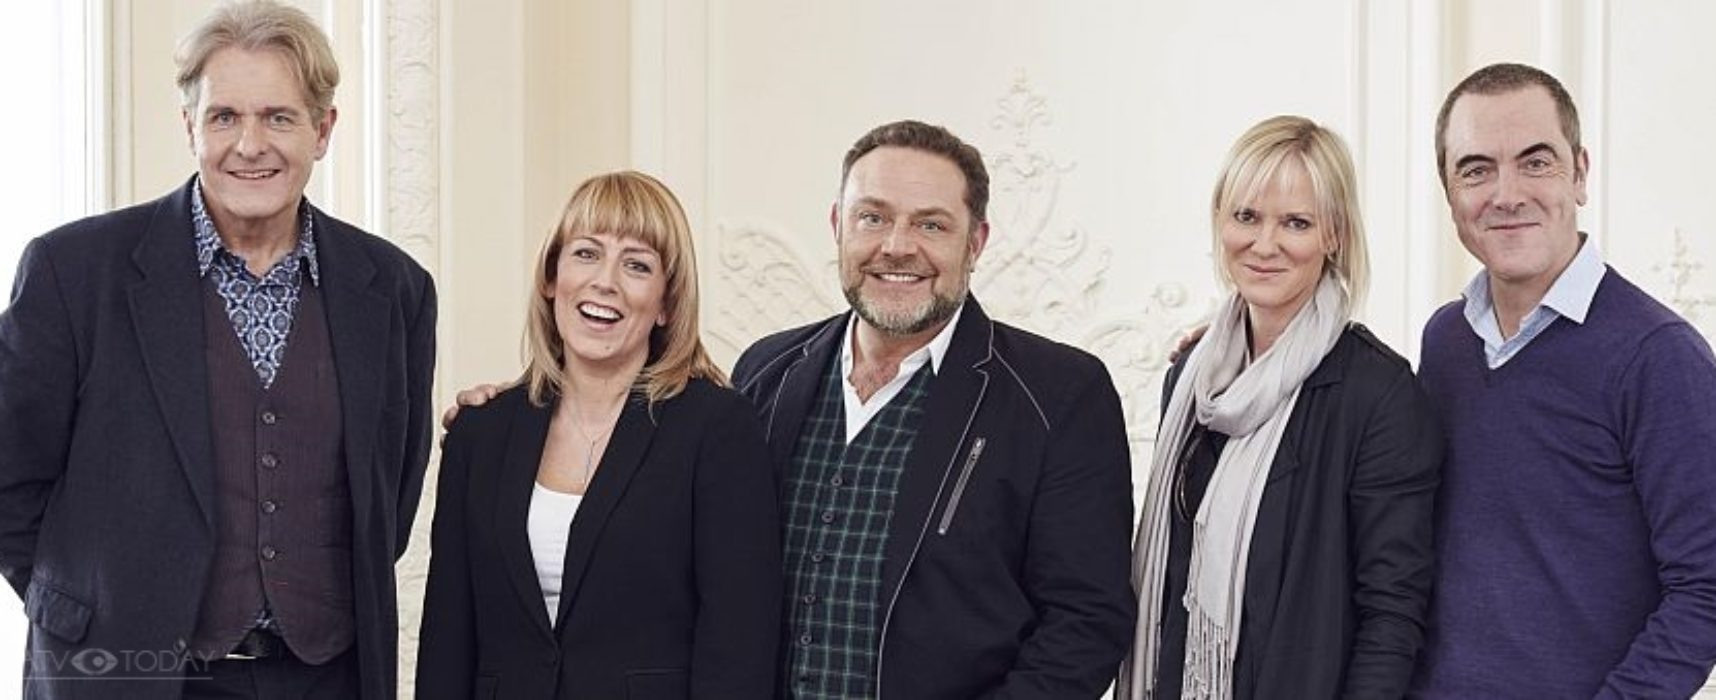 Cold Feet gets eighth series on ITV